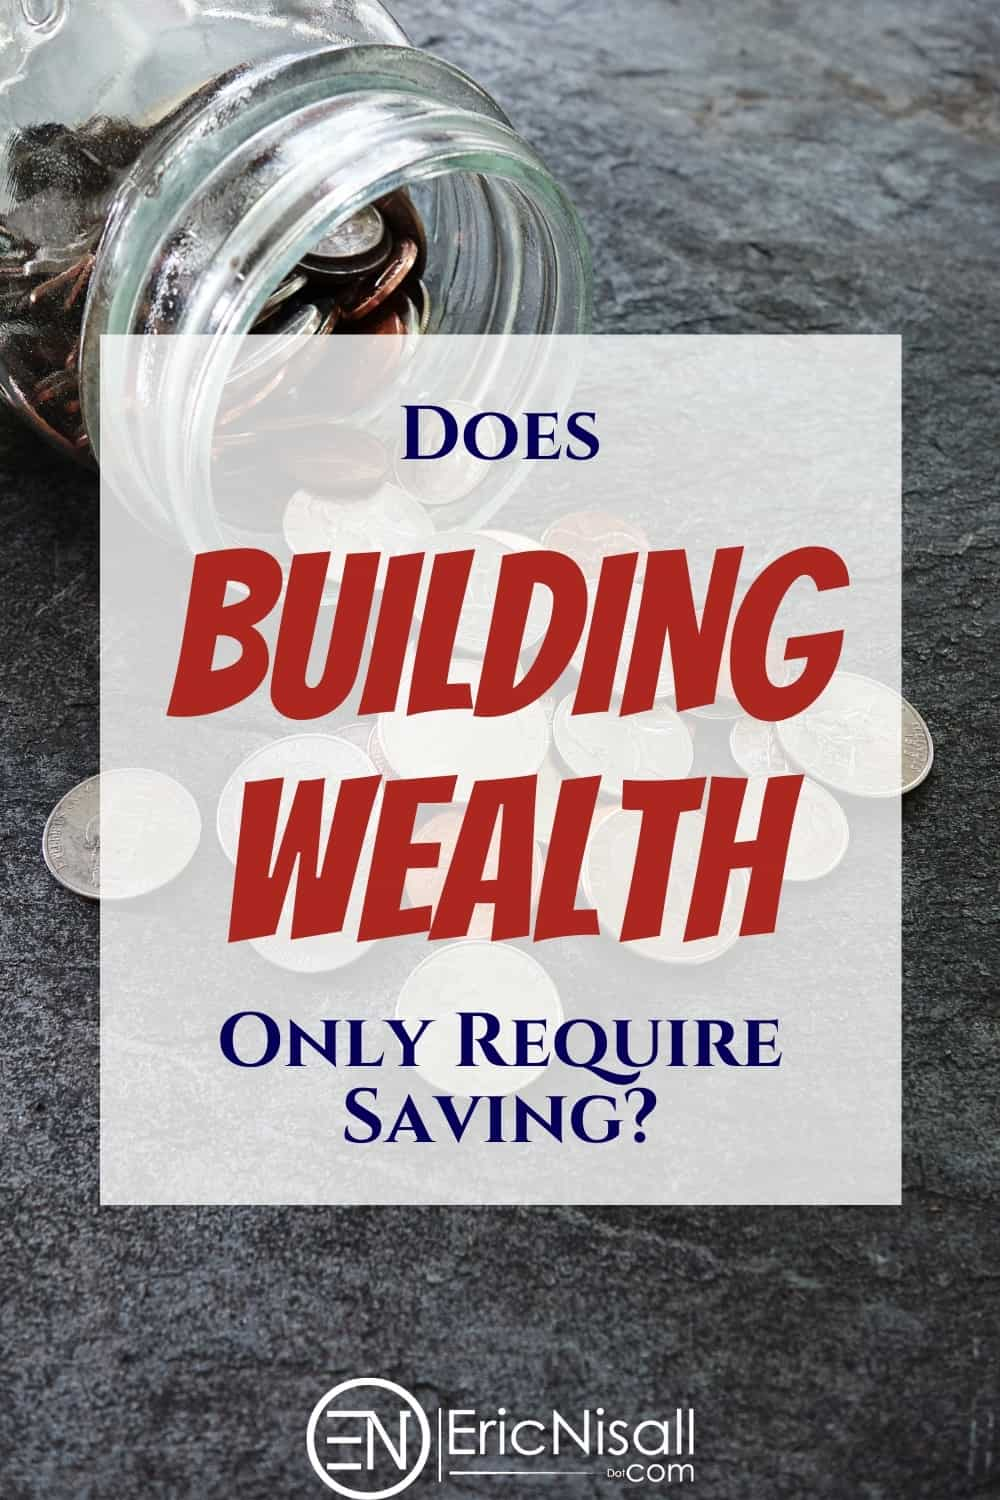 Saving is great, but not as good as increasing your earnings. Increasing your earnings is great, but doesn't help if you spend it all. Neither on their own is optimal for building wealth--so which one do you choose for wealth creation? #wealth #savings #makingmoney #finances via @ericnisall